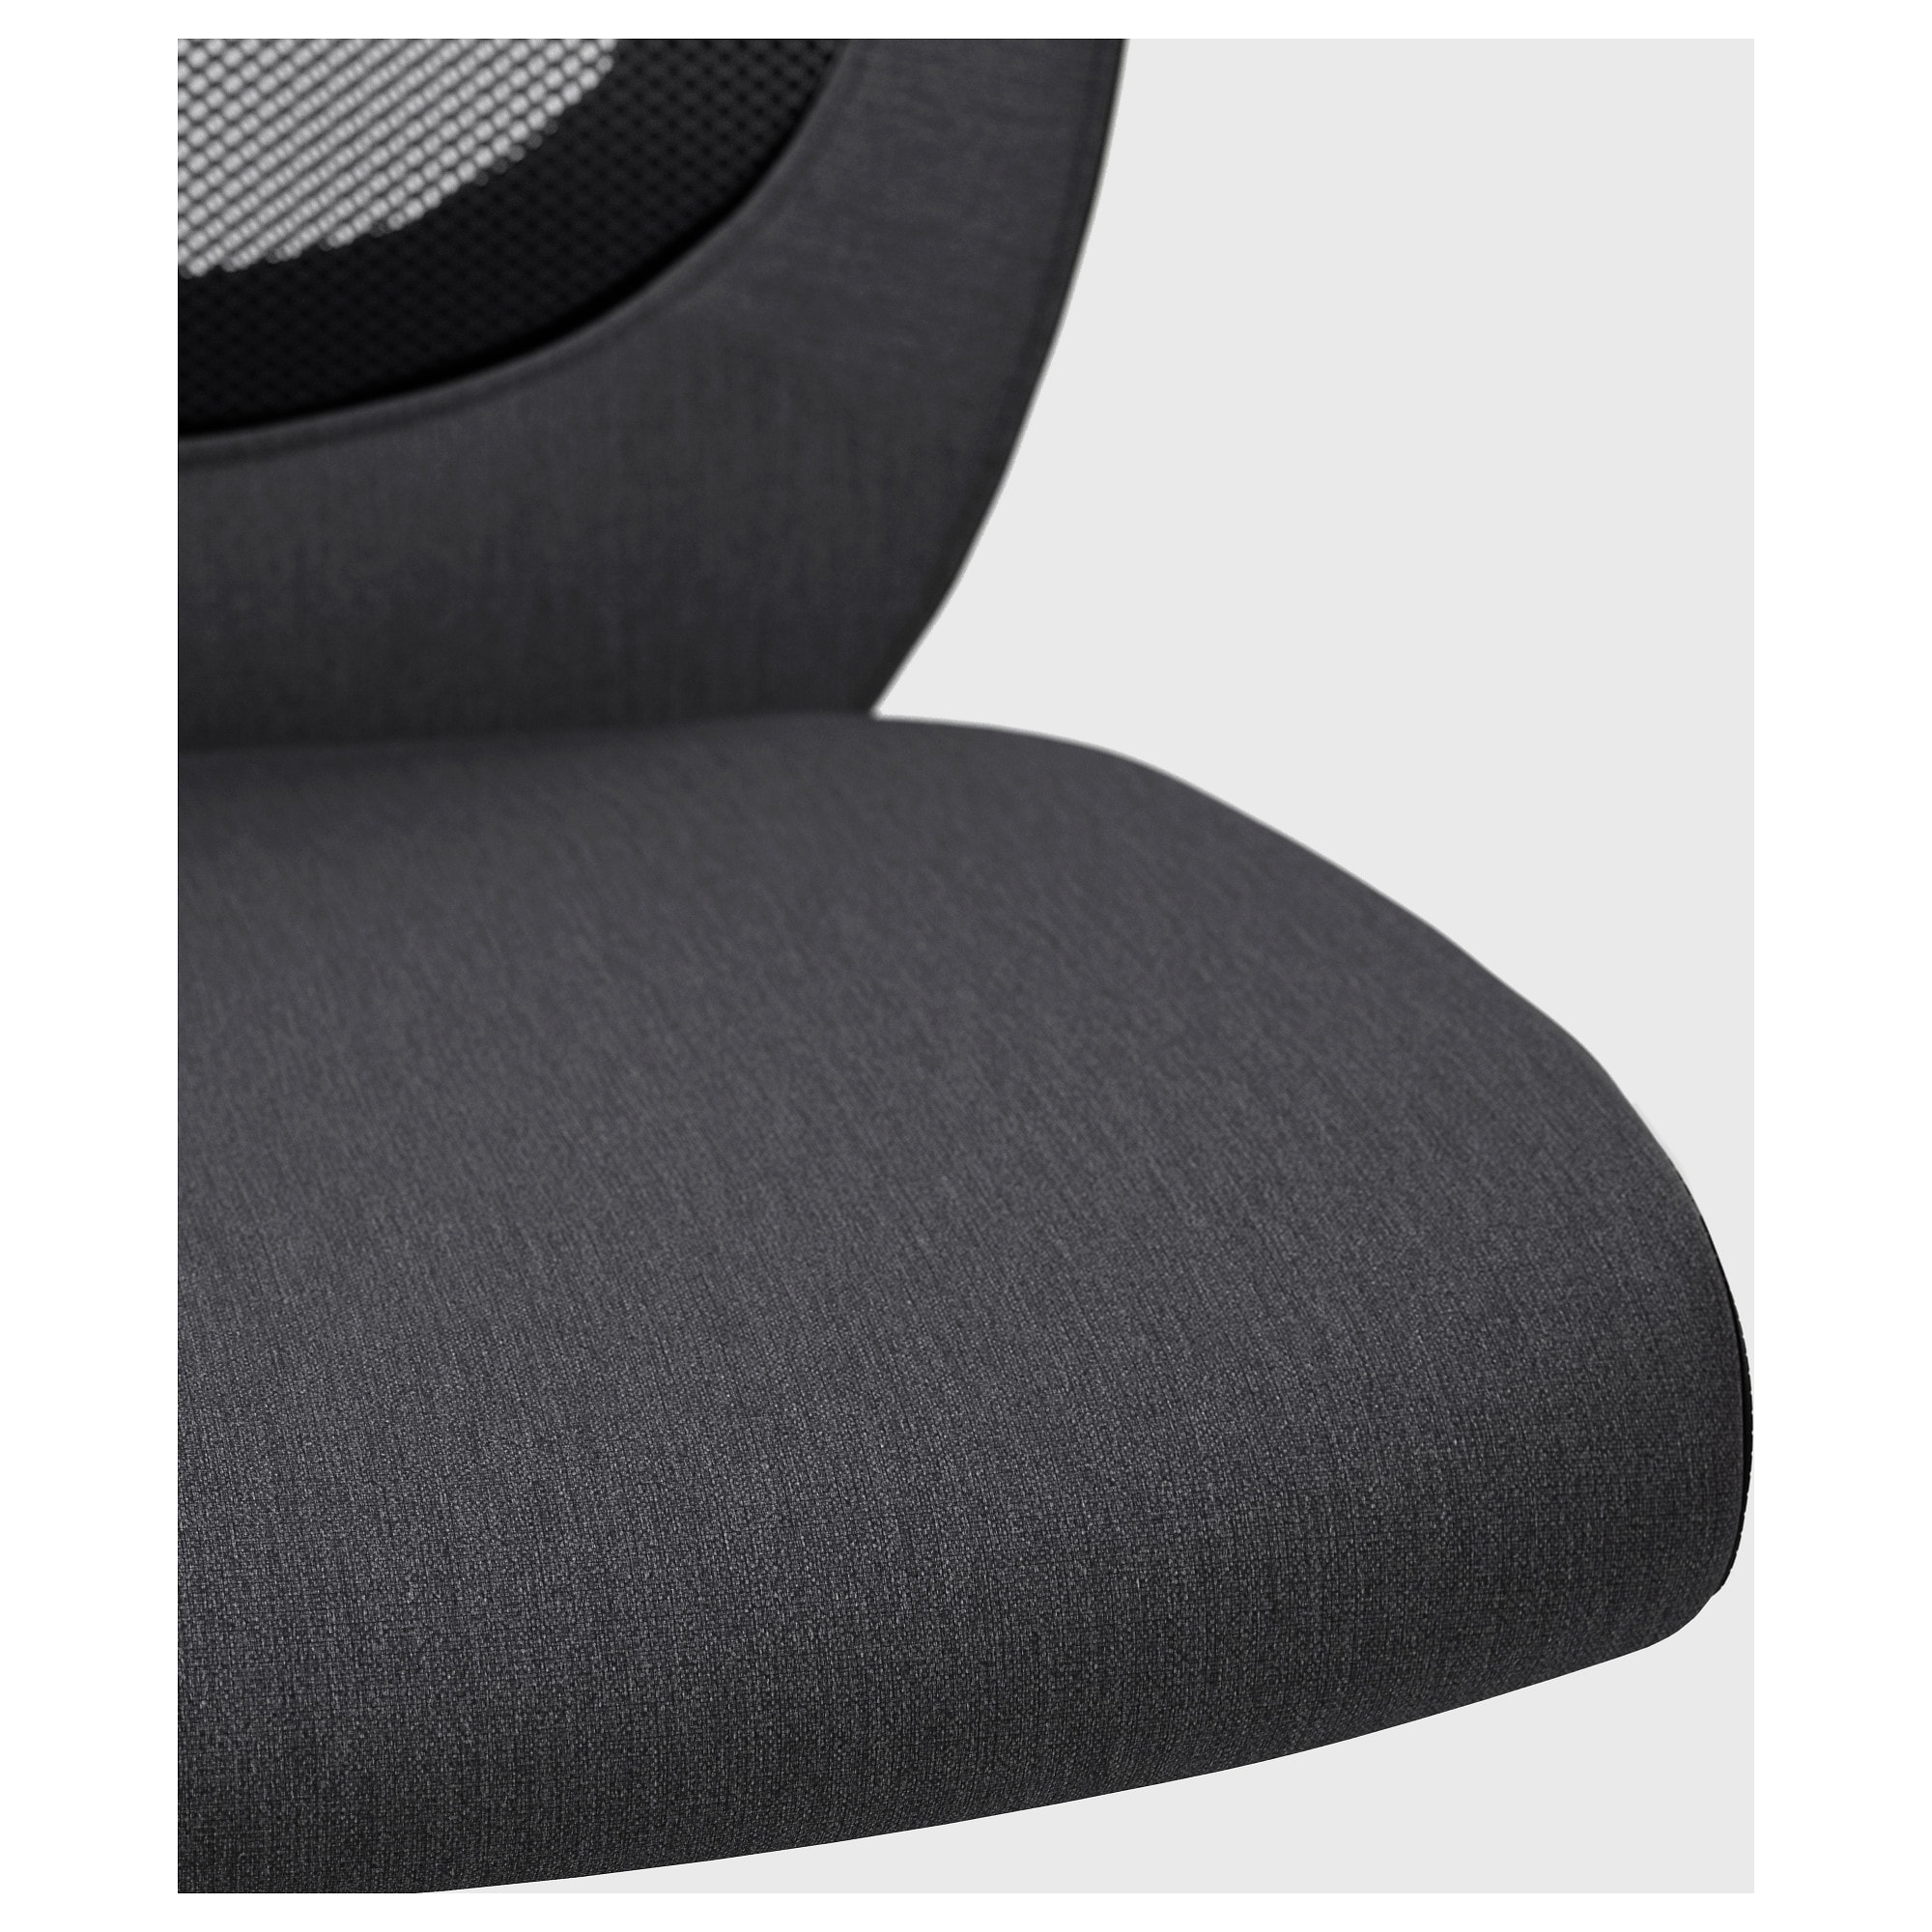 Flintan Swivel Chair Vissle Grey – Ikea Within Grey Swivel Chairs (Image 6 of 20)